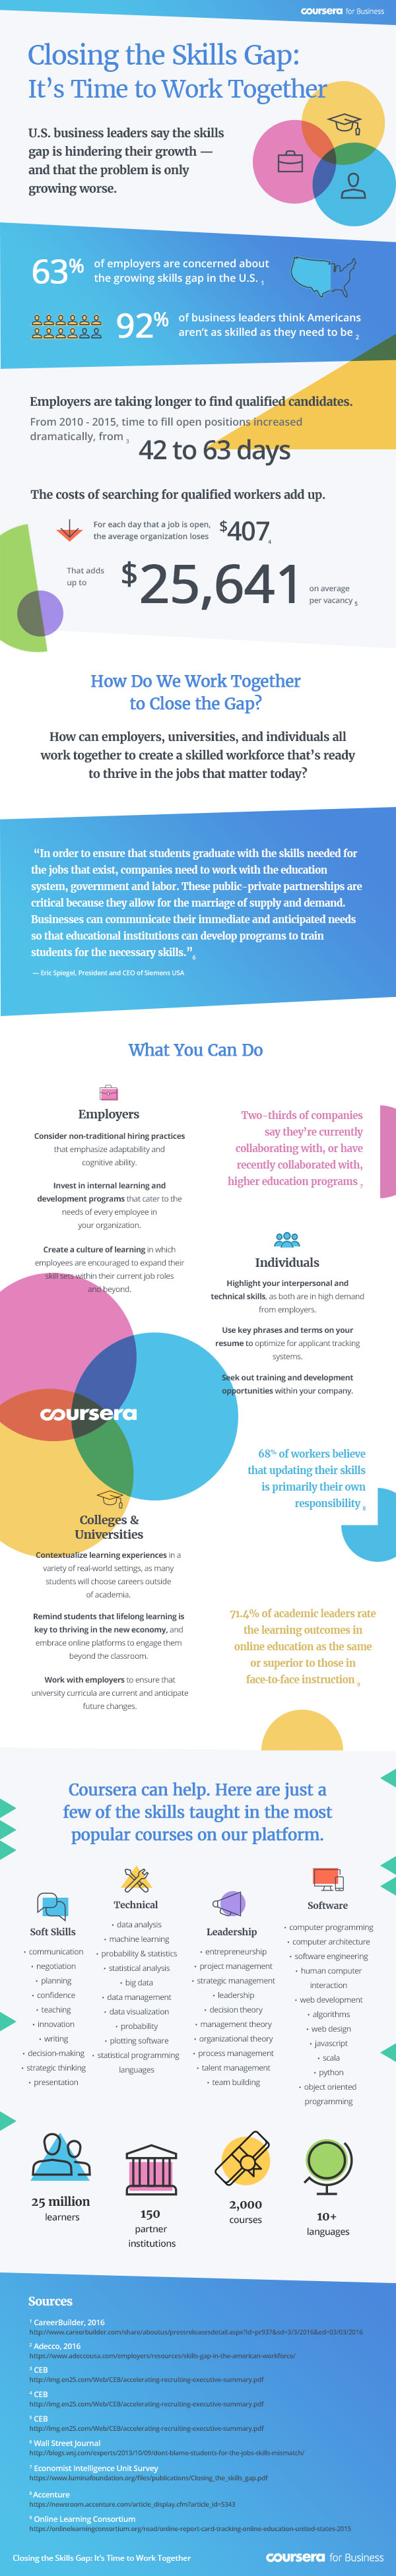 [Infographic] Closing the Skills Gap: It's Time to Work Together